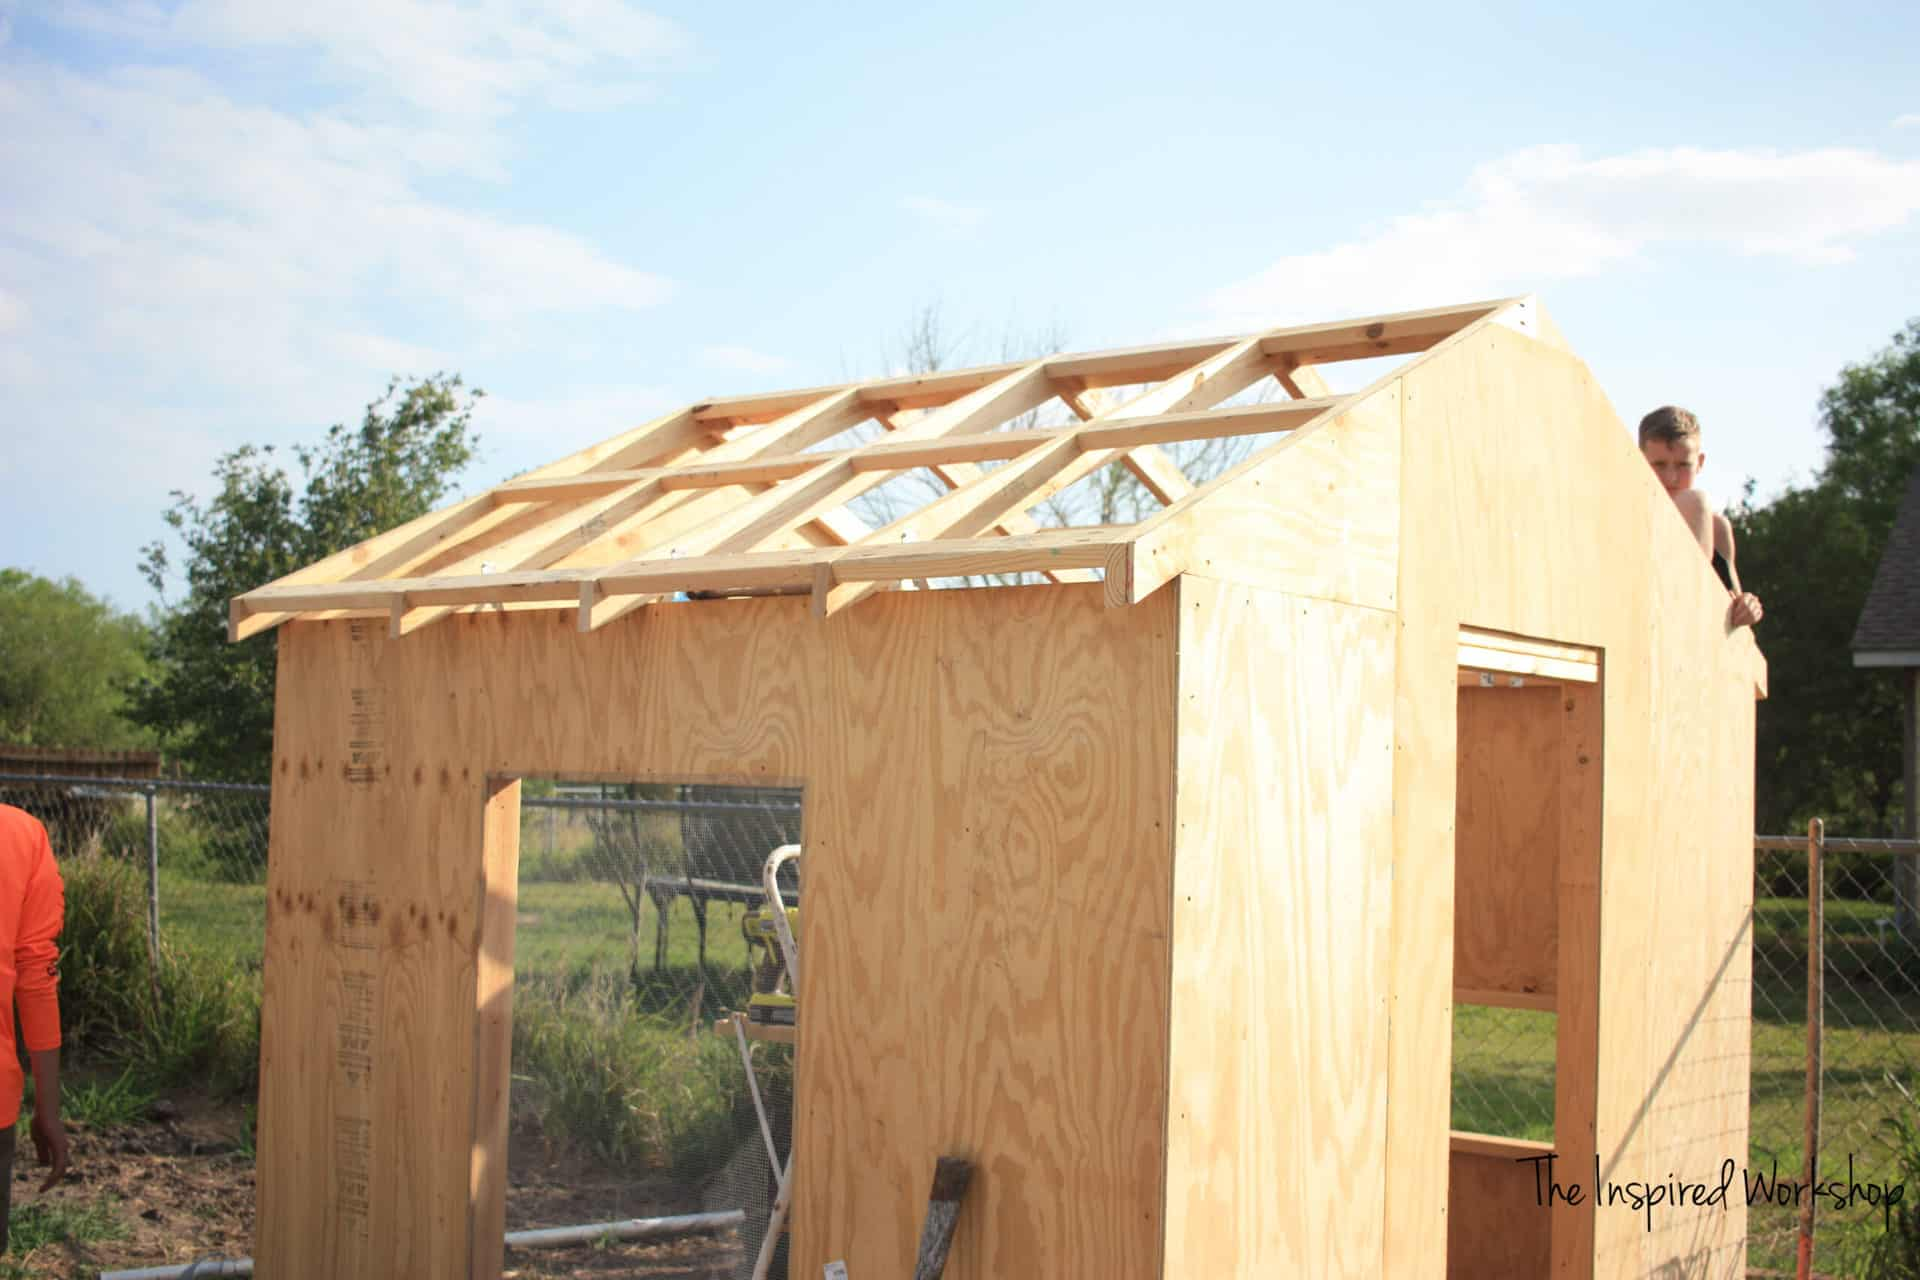 DIY Chicken coop - free plans to build your own